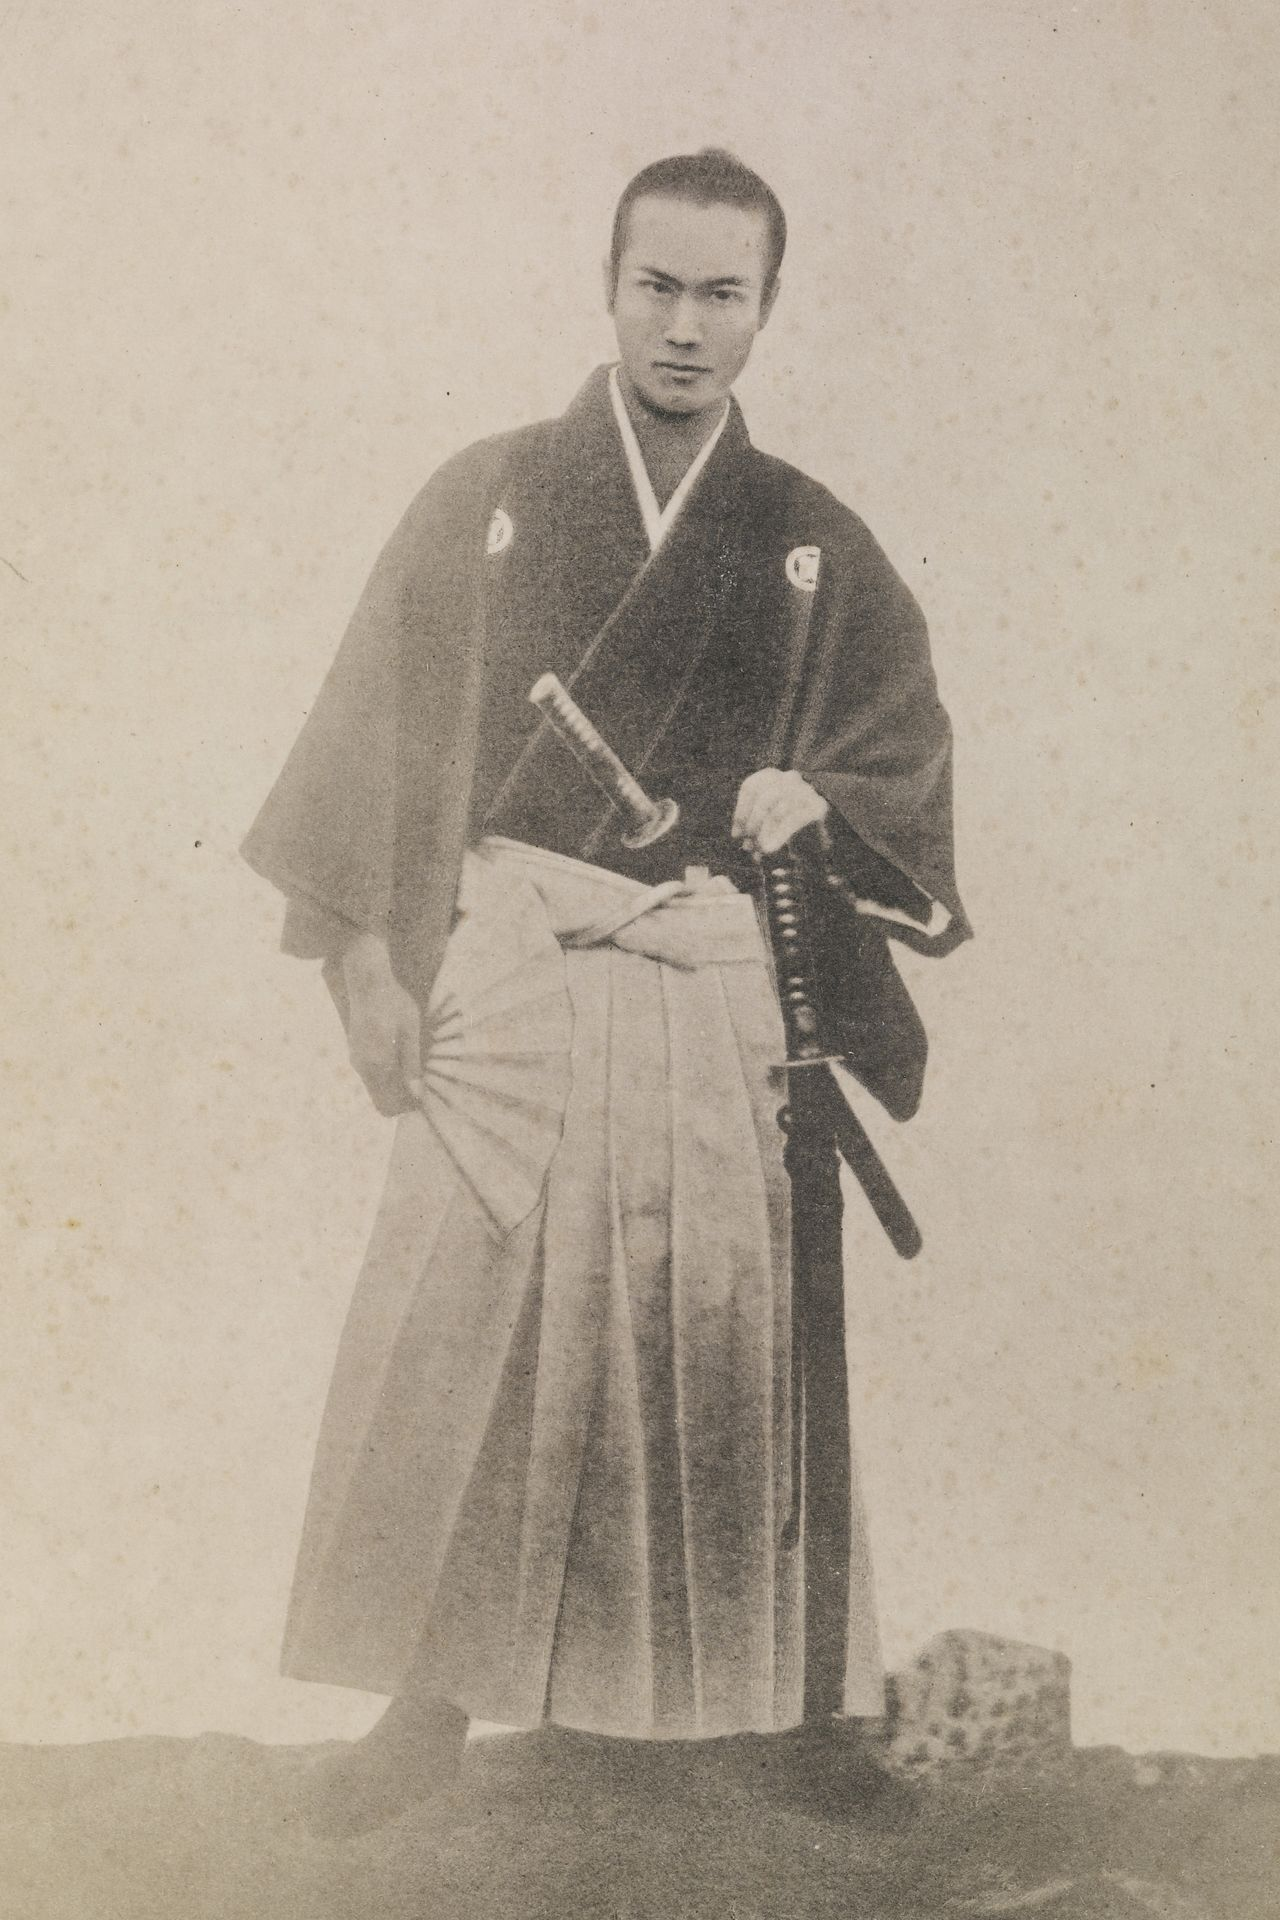 Heikurō was reputedly tall and handsome. (© Shibusawa Memorial Museum)